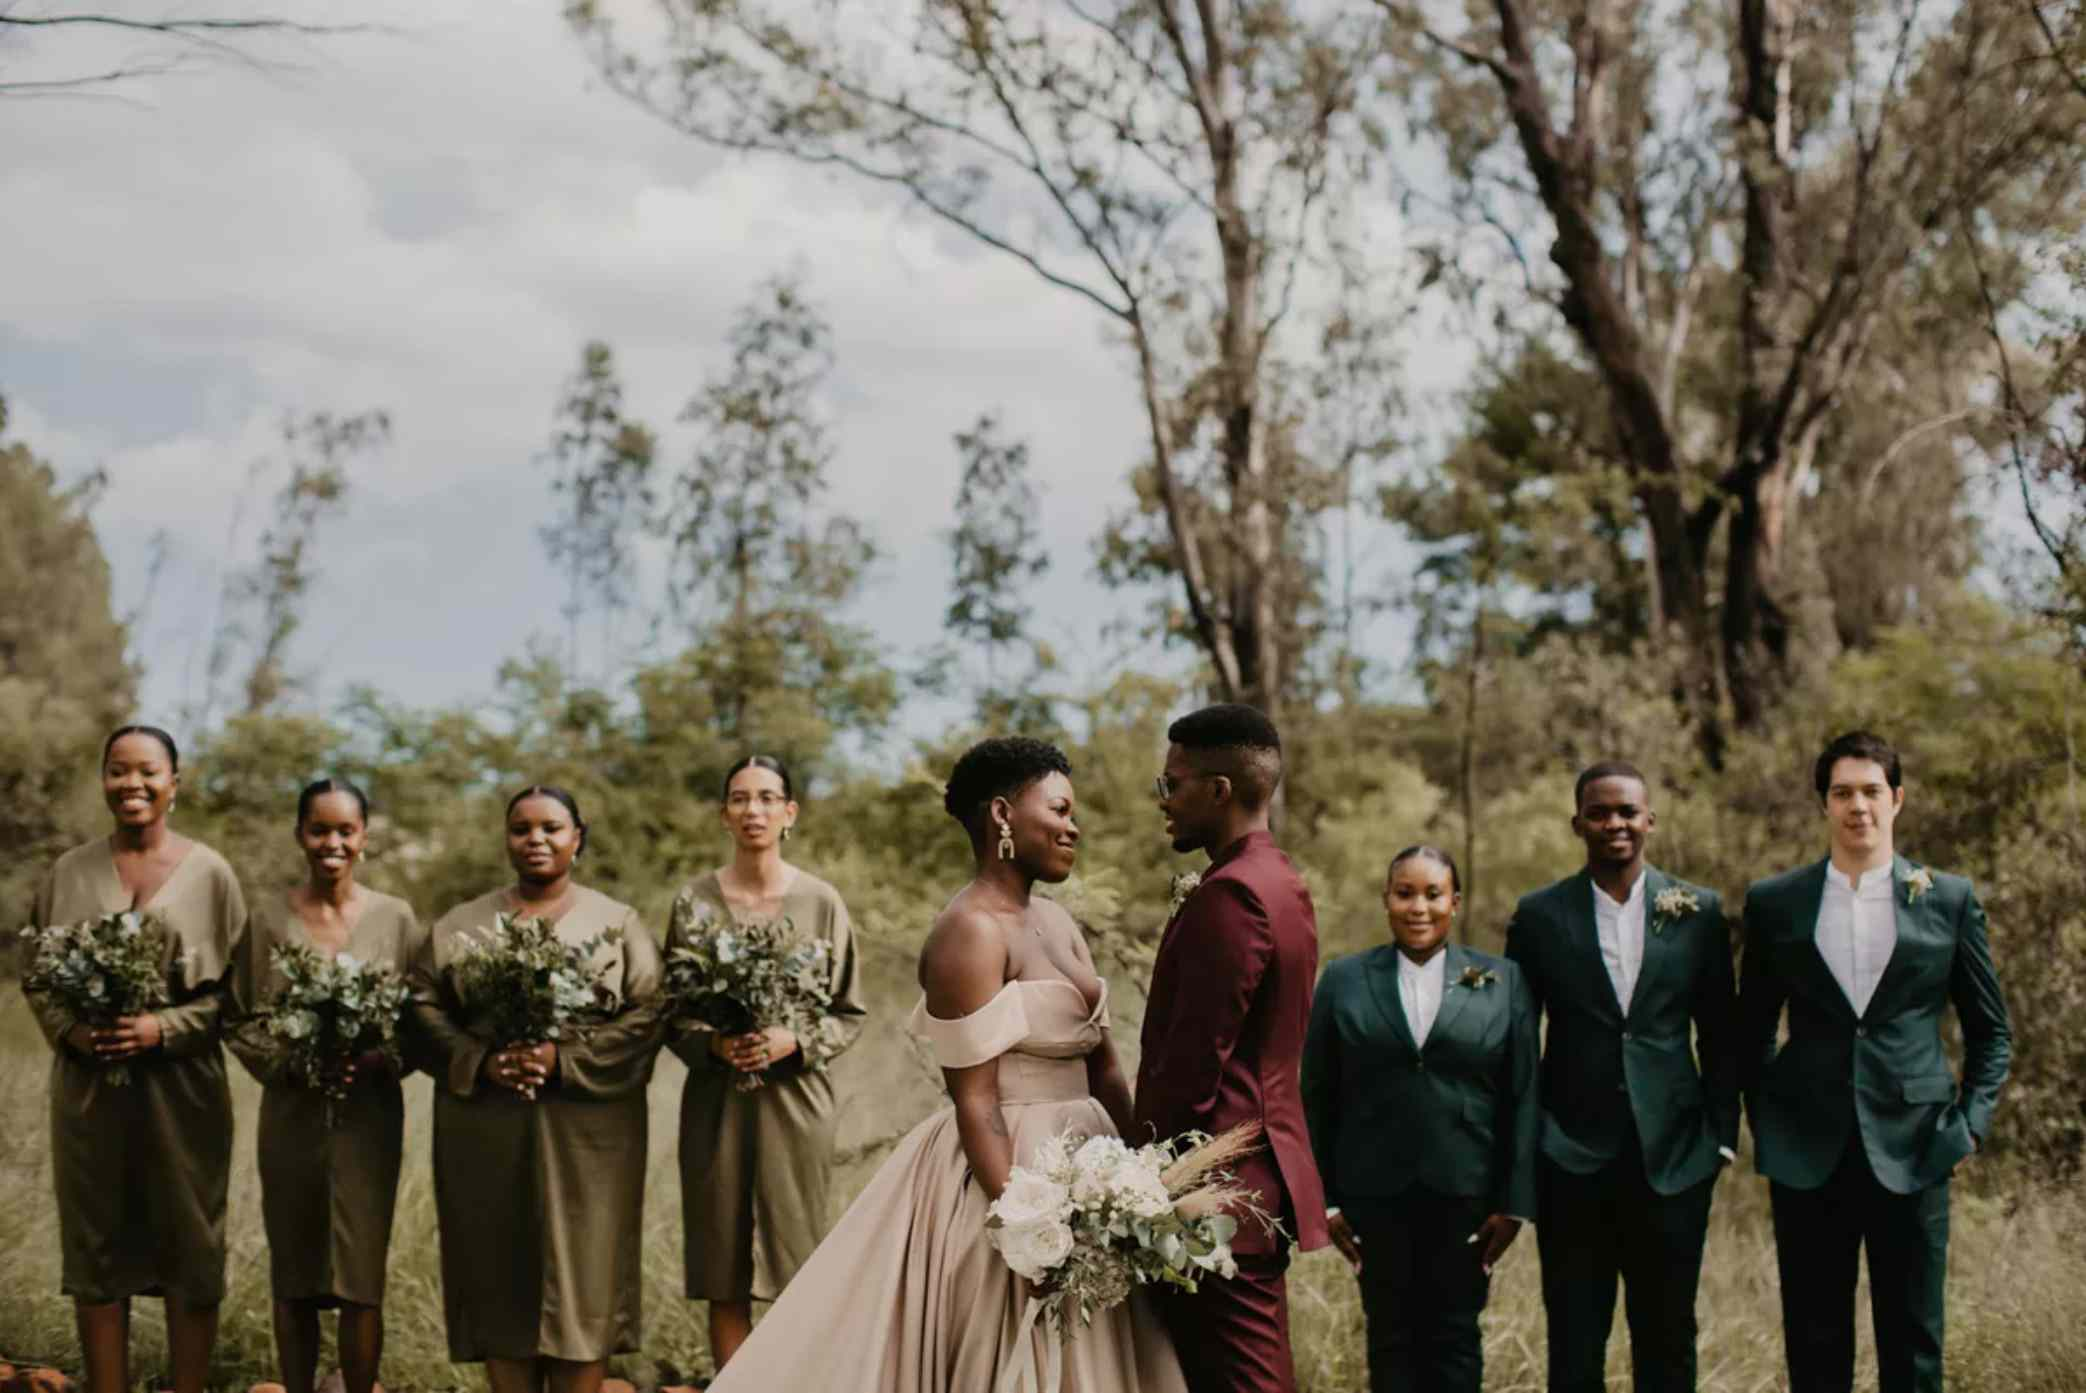 Wedding party in shades of green